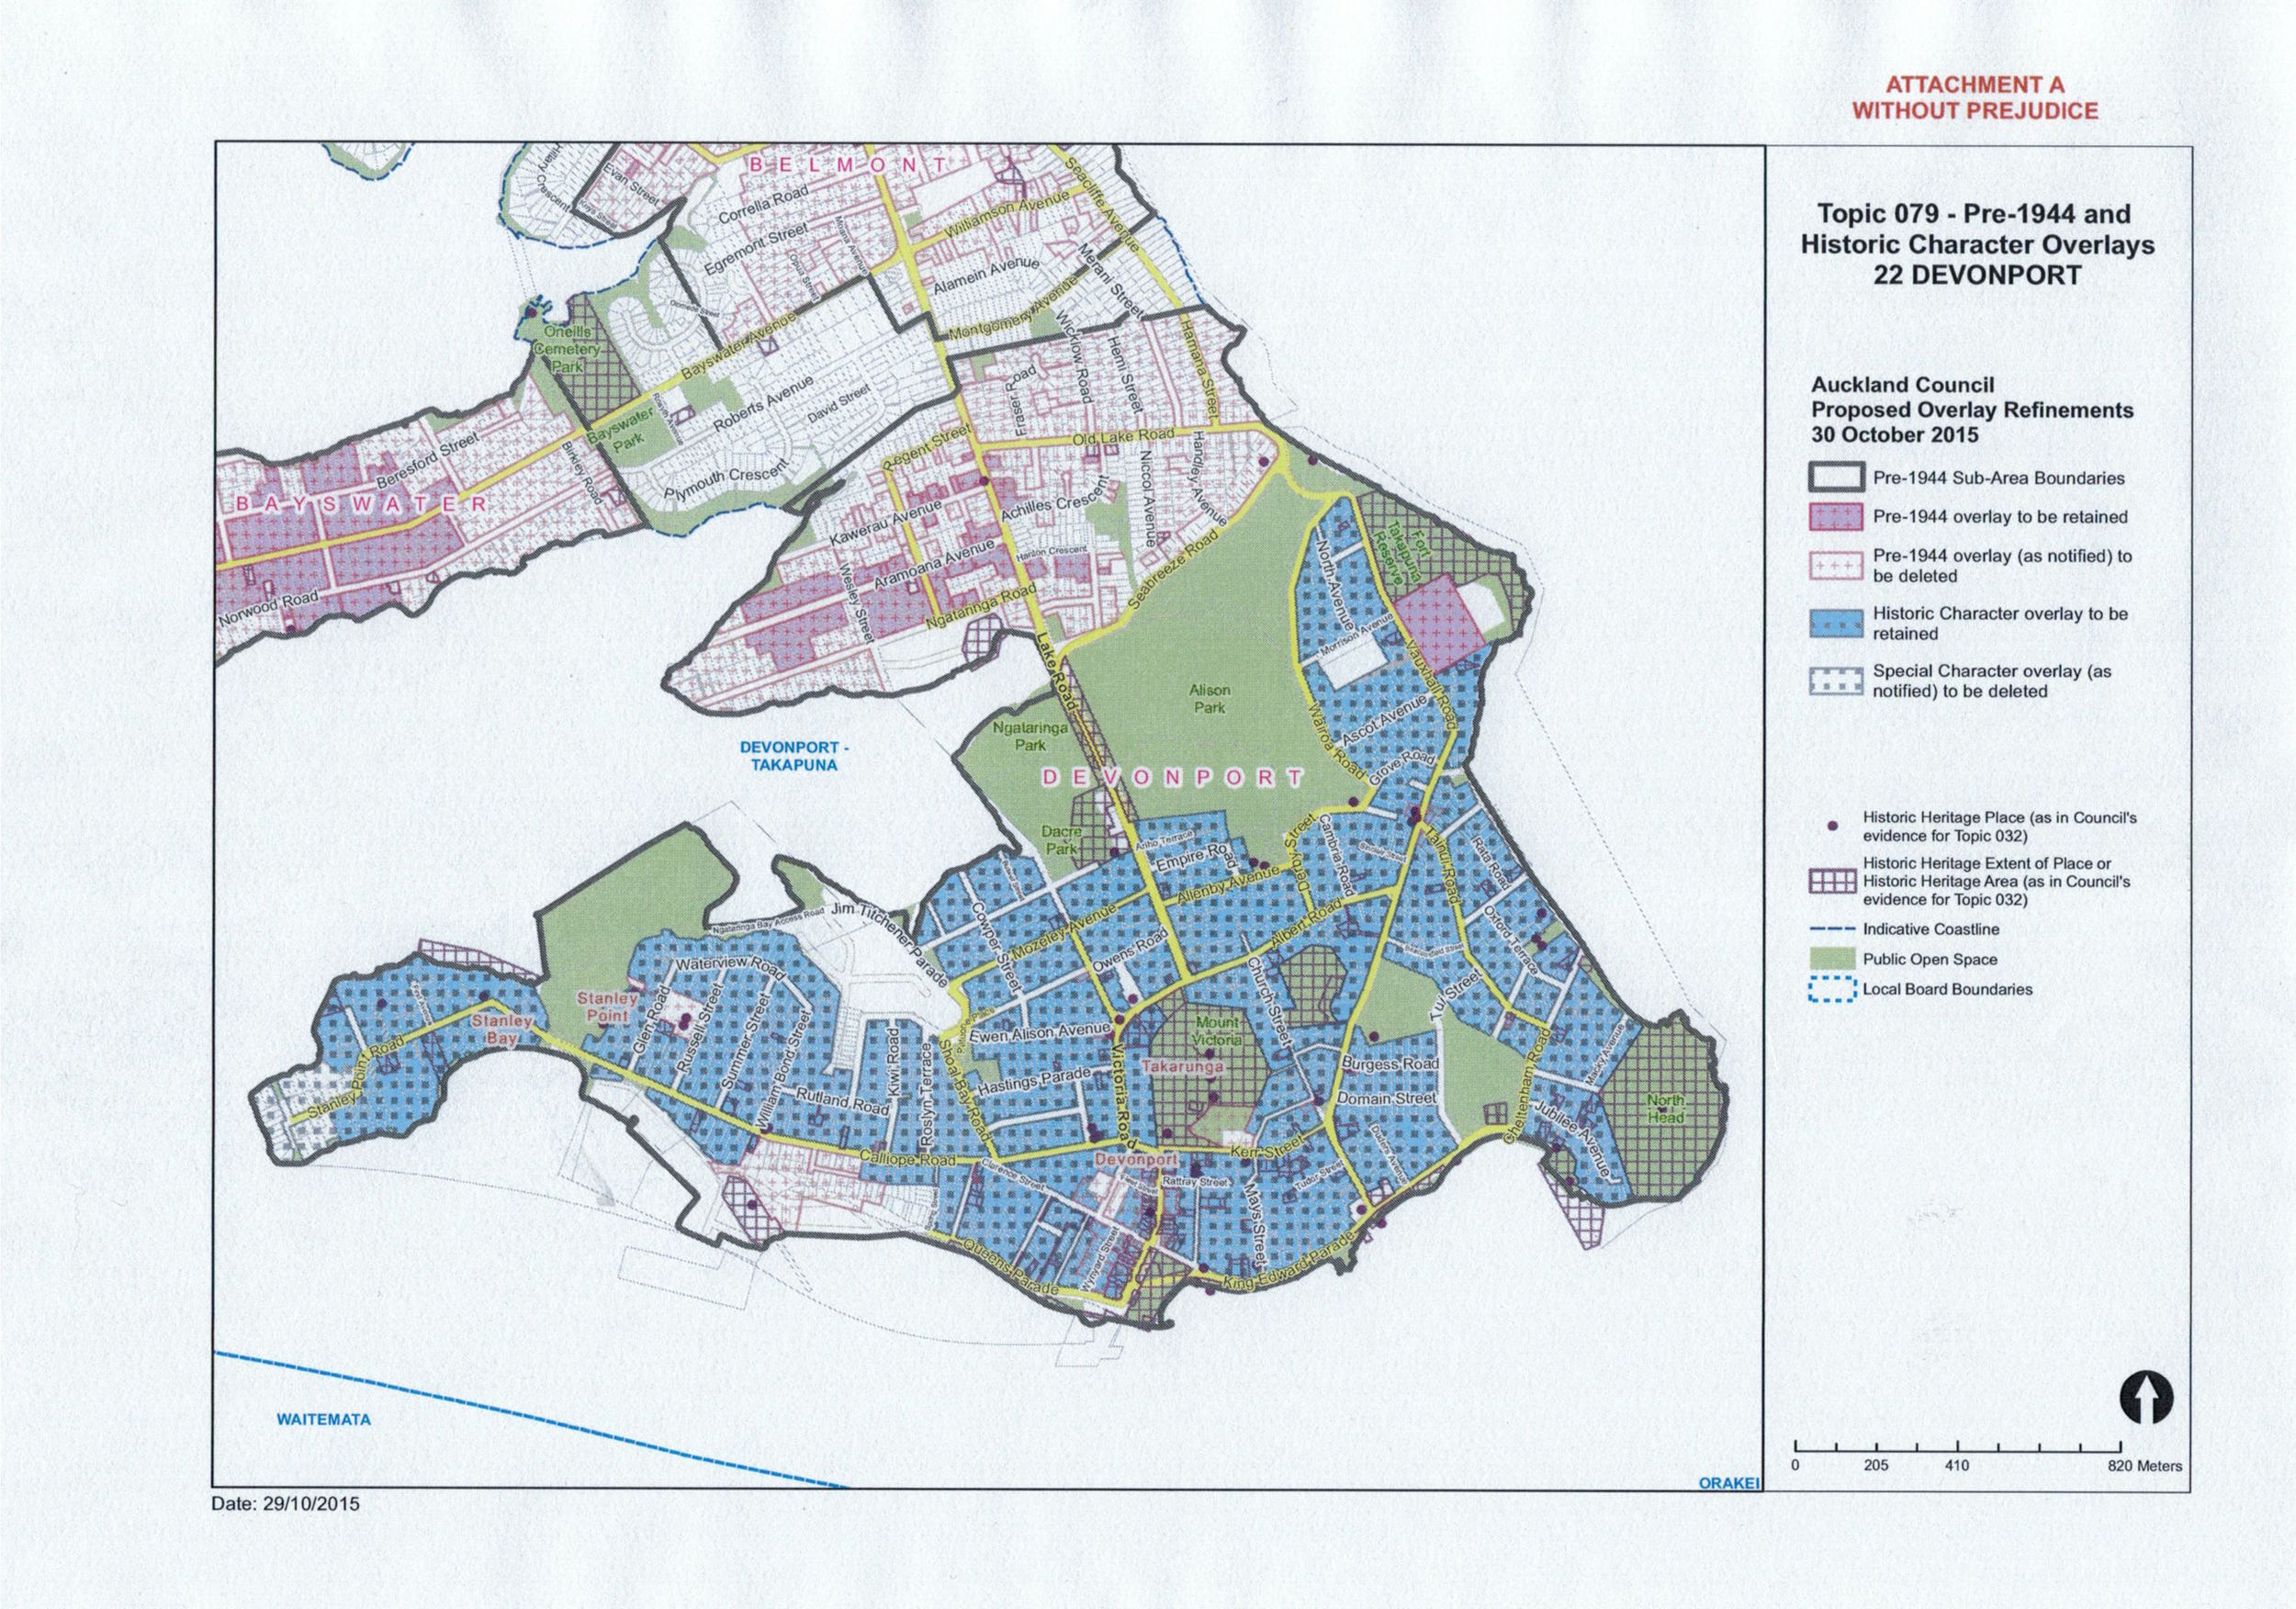 PAUP - Revised maps of heritage overlays Devonport. Blue colour denotes Historic Character overlay to be retained. Mauve denotes Pre-1944 overlay to be retained.